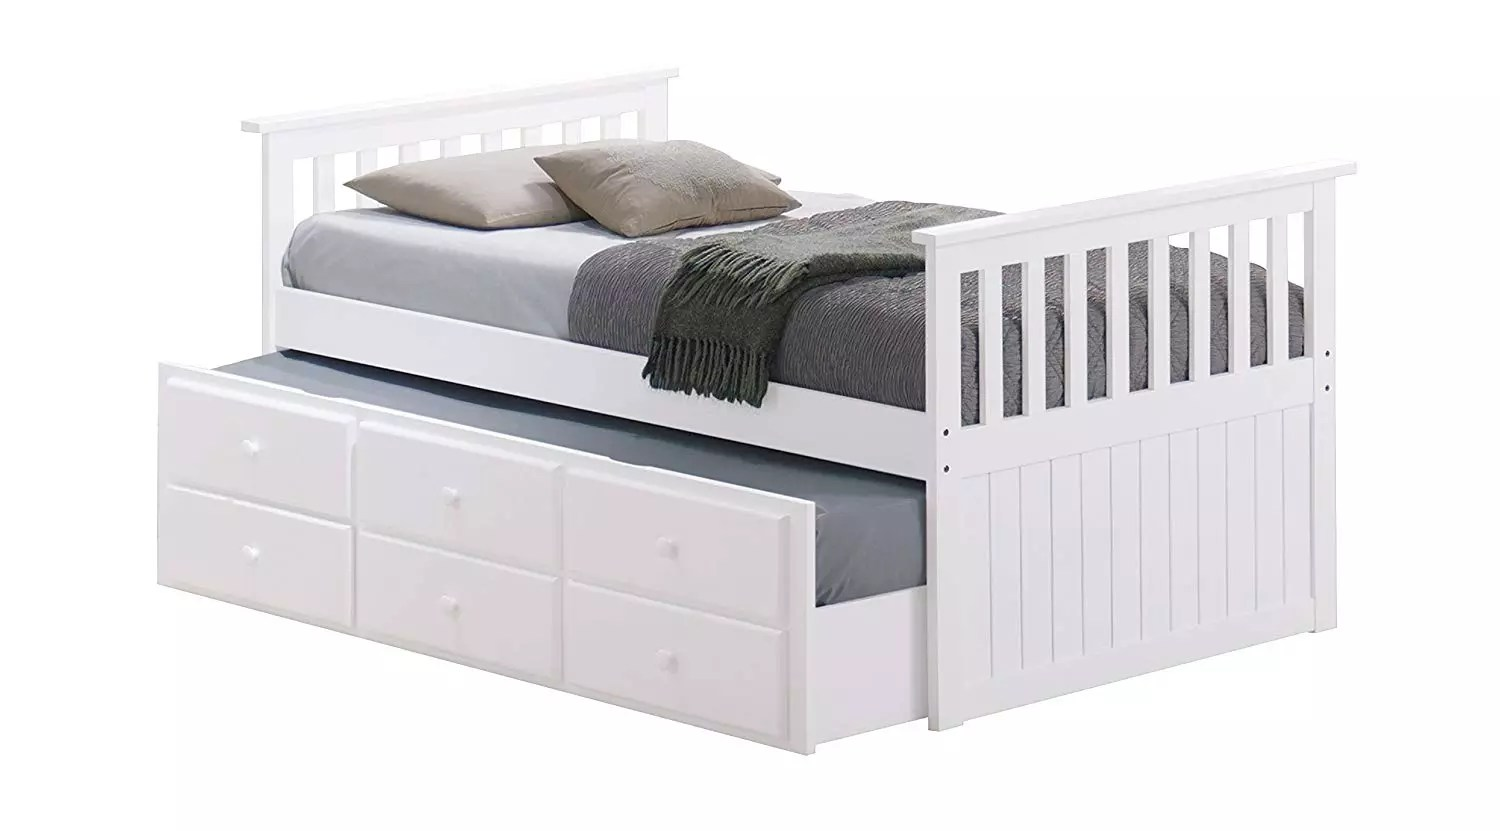 bed with trundle bed and drawers buy modern trundle bed double bed with storage captain s bed with trundle bed and drawers product on alibaba com